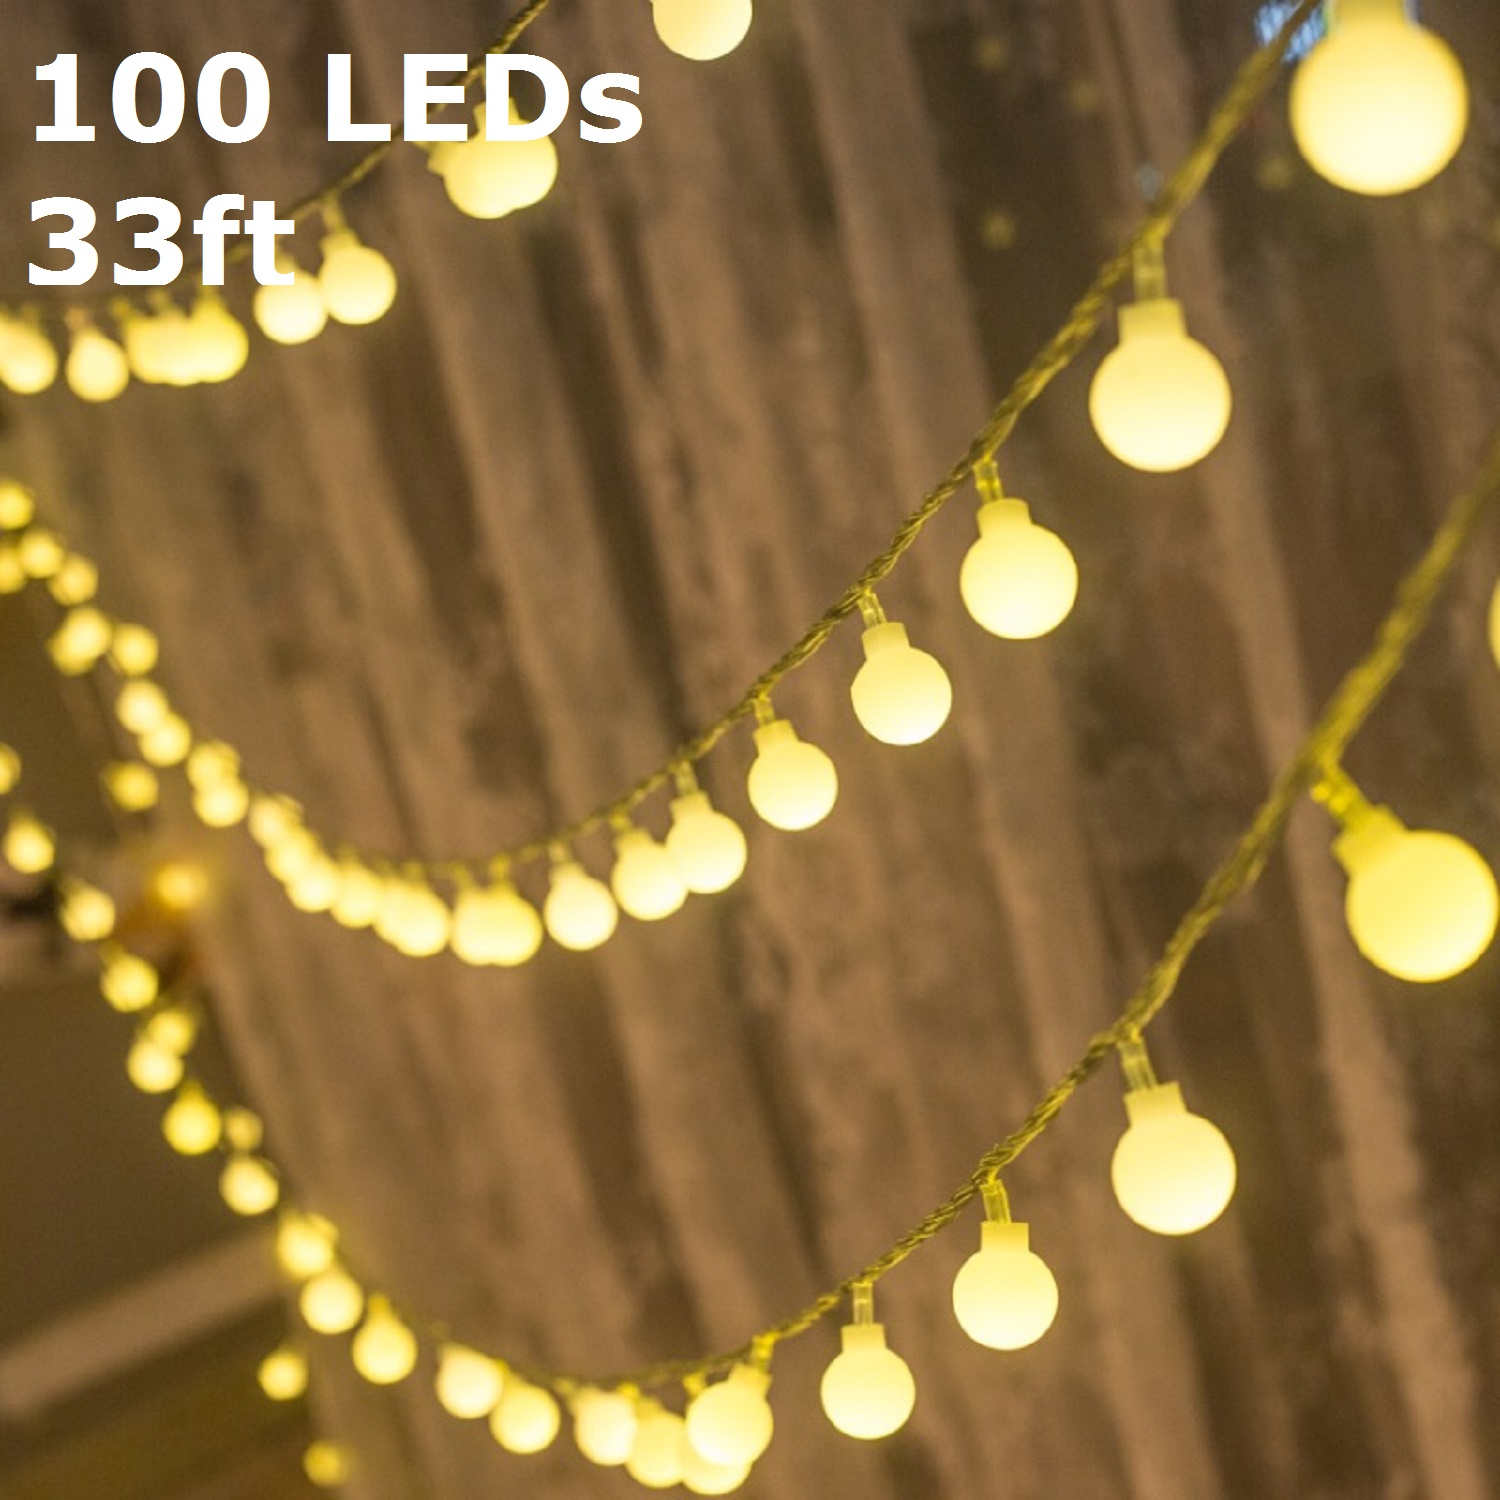 TORCHSTAR LED Globe String Lights, Waterproof Outdoor String Lights,  Christmas Lights For Party,